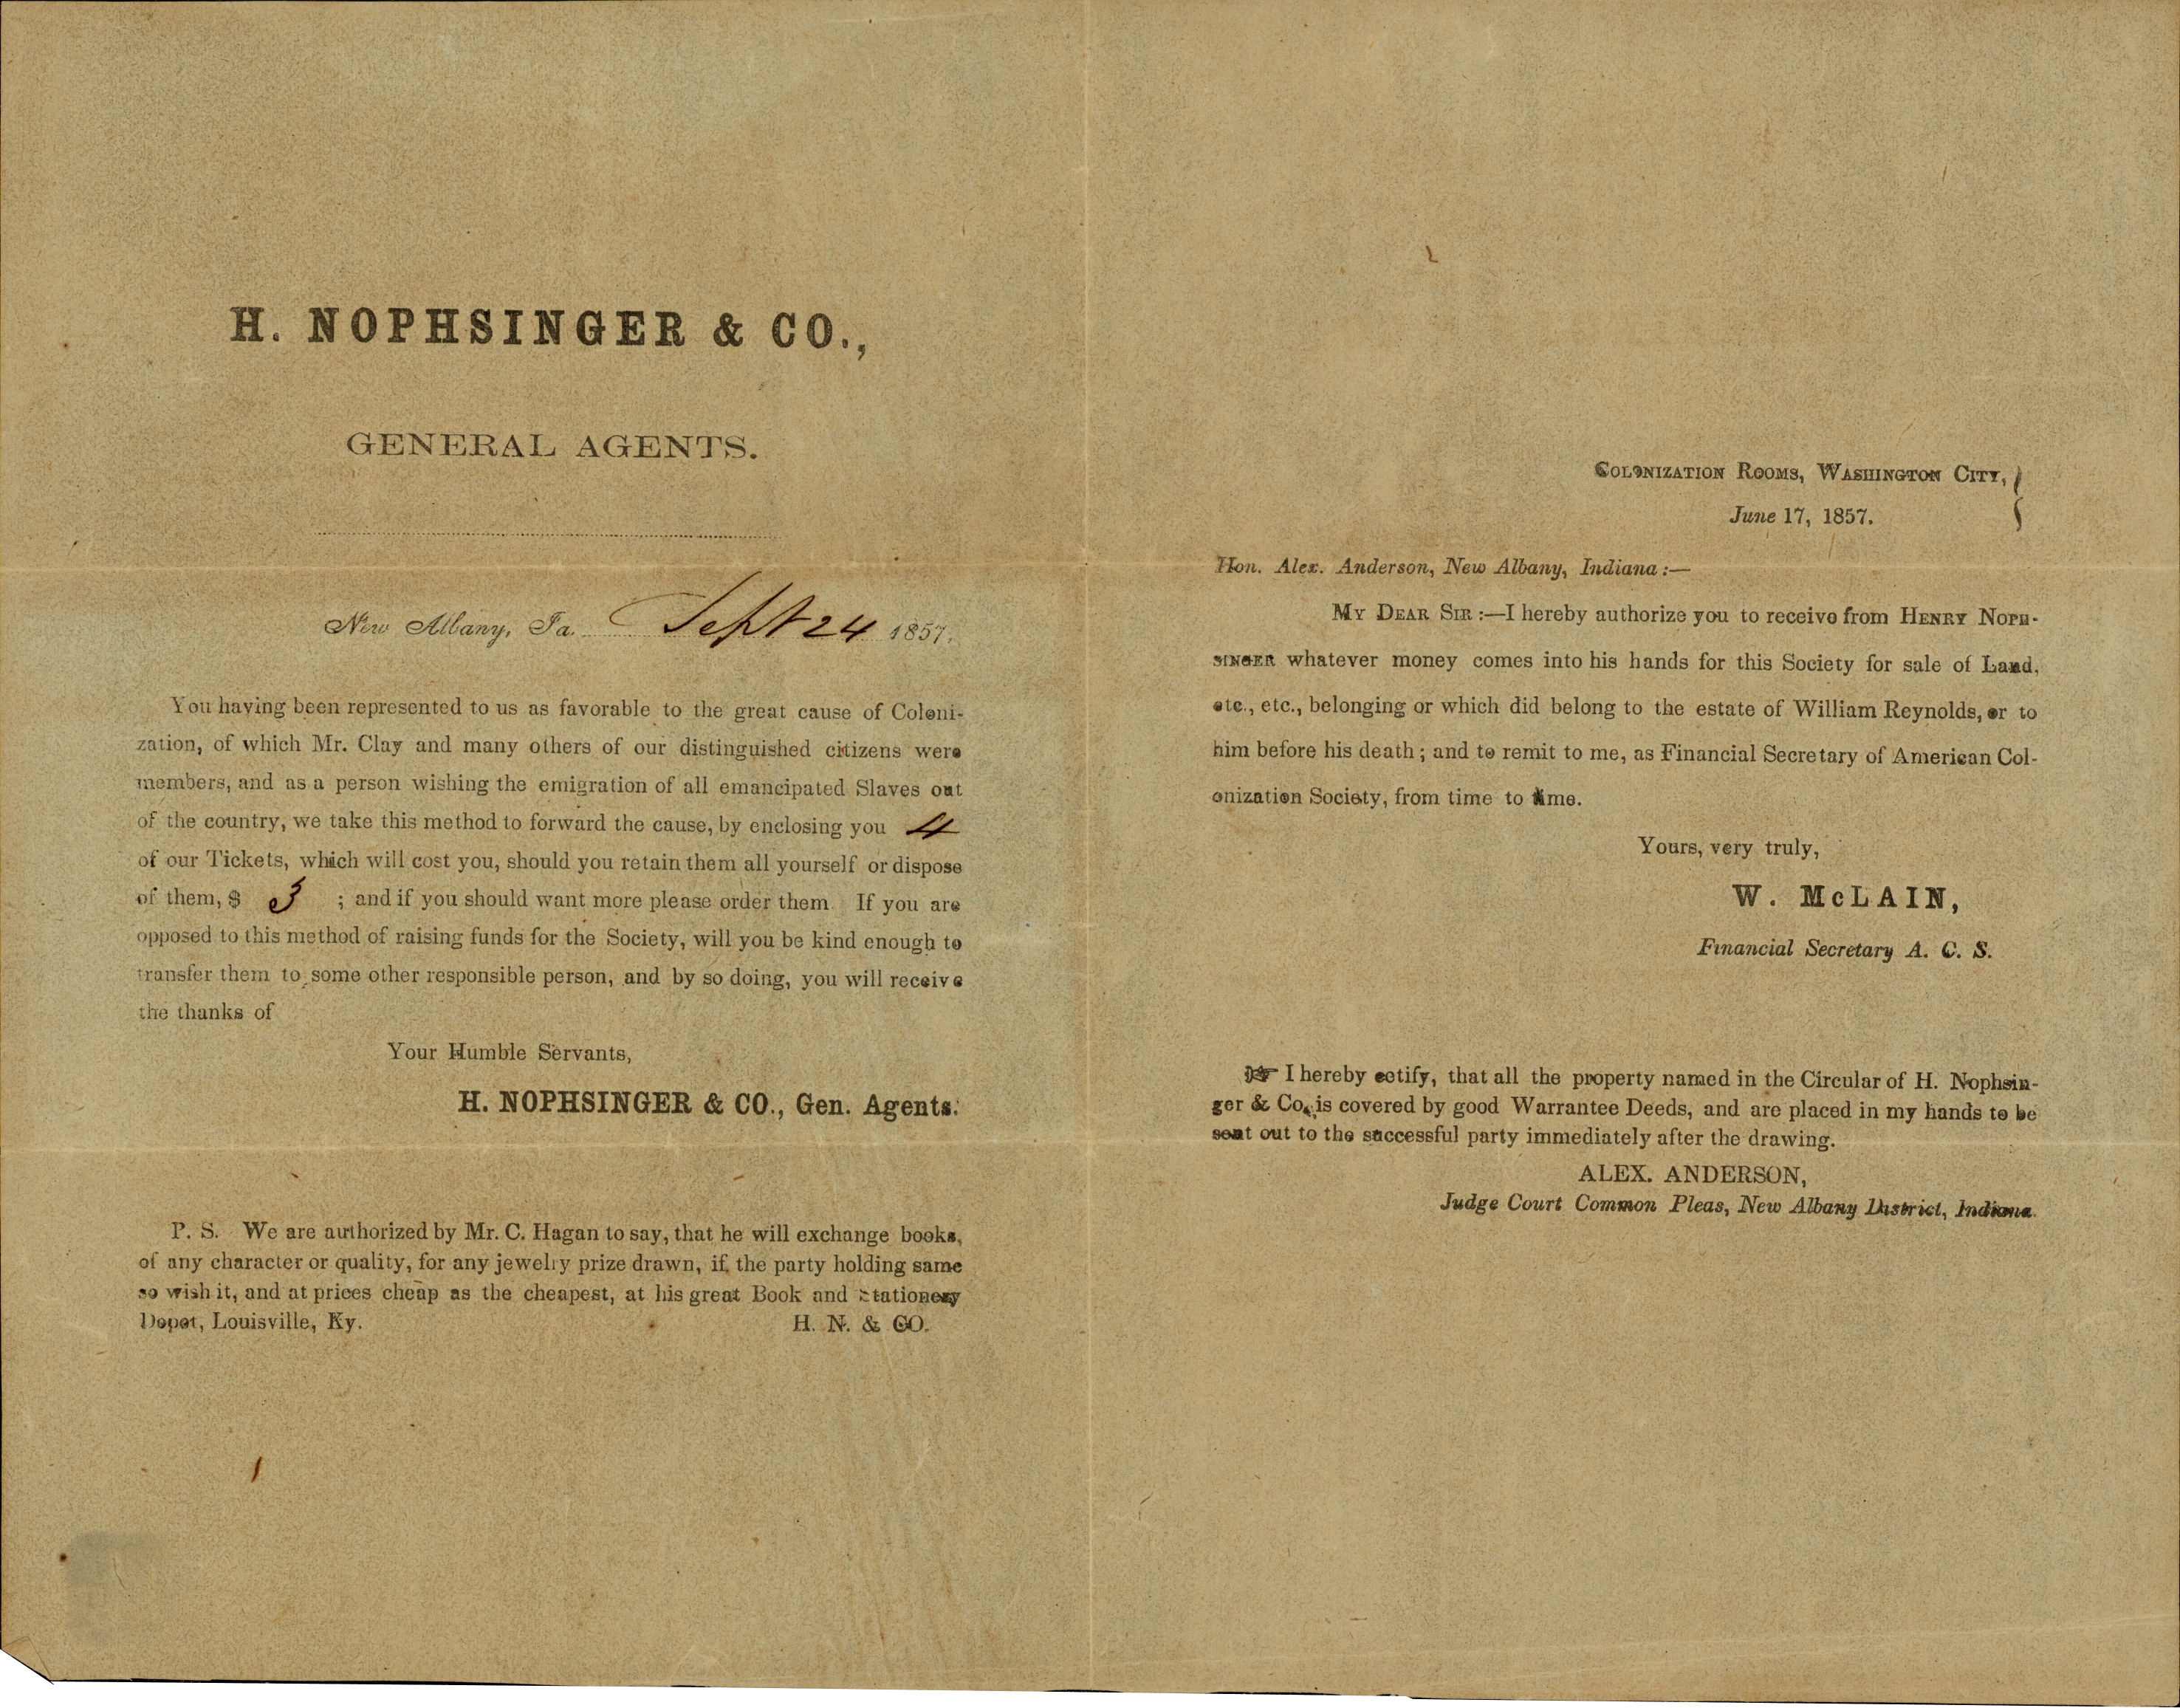 H. Nophsinger &amp; Co., (General Agents) papers.